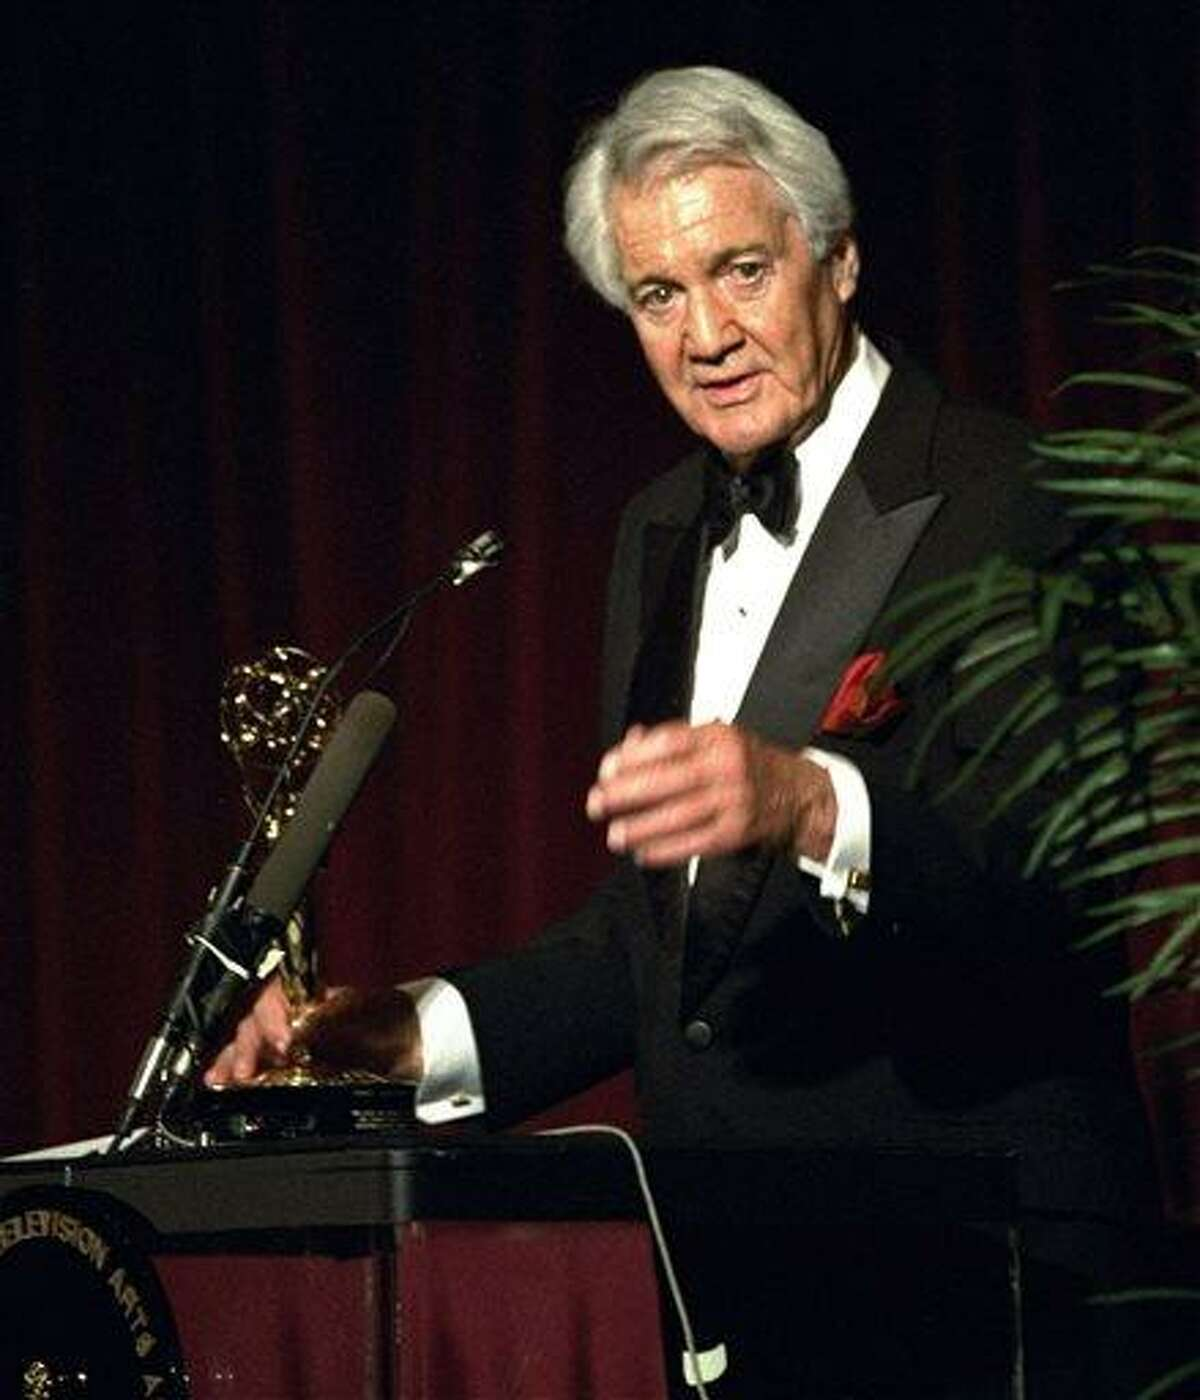 AP Photo/Rob Clark, File Pat Summerall, completing his 34th and final season with CBS, receives an award for lifetime achievement at the 1994 Sports Emmy Awards in New York. Fox Sports spokesman Dan Bell said Tuesday, April 16, 2013, that Summerall, the NFL player-turned-broadcaster whose deep, resonant voice called games for more than 40 years, has died at the age of 82.